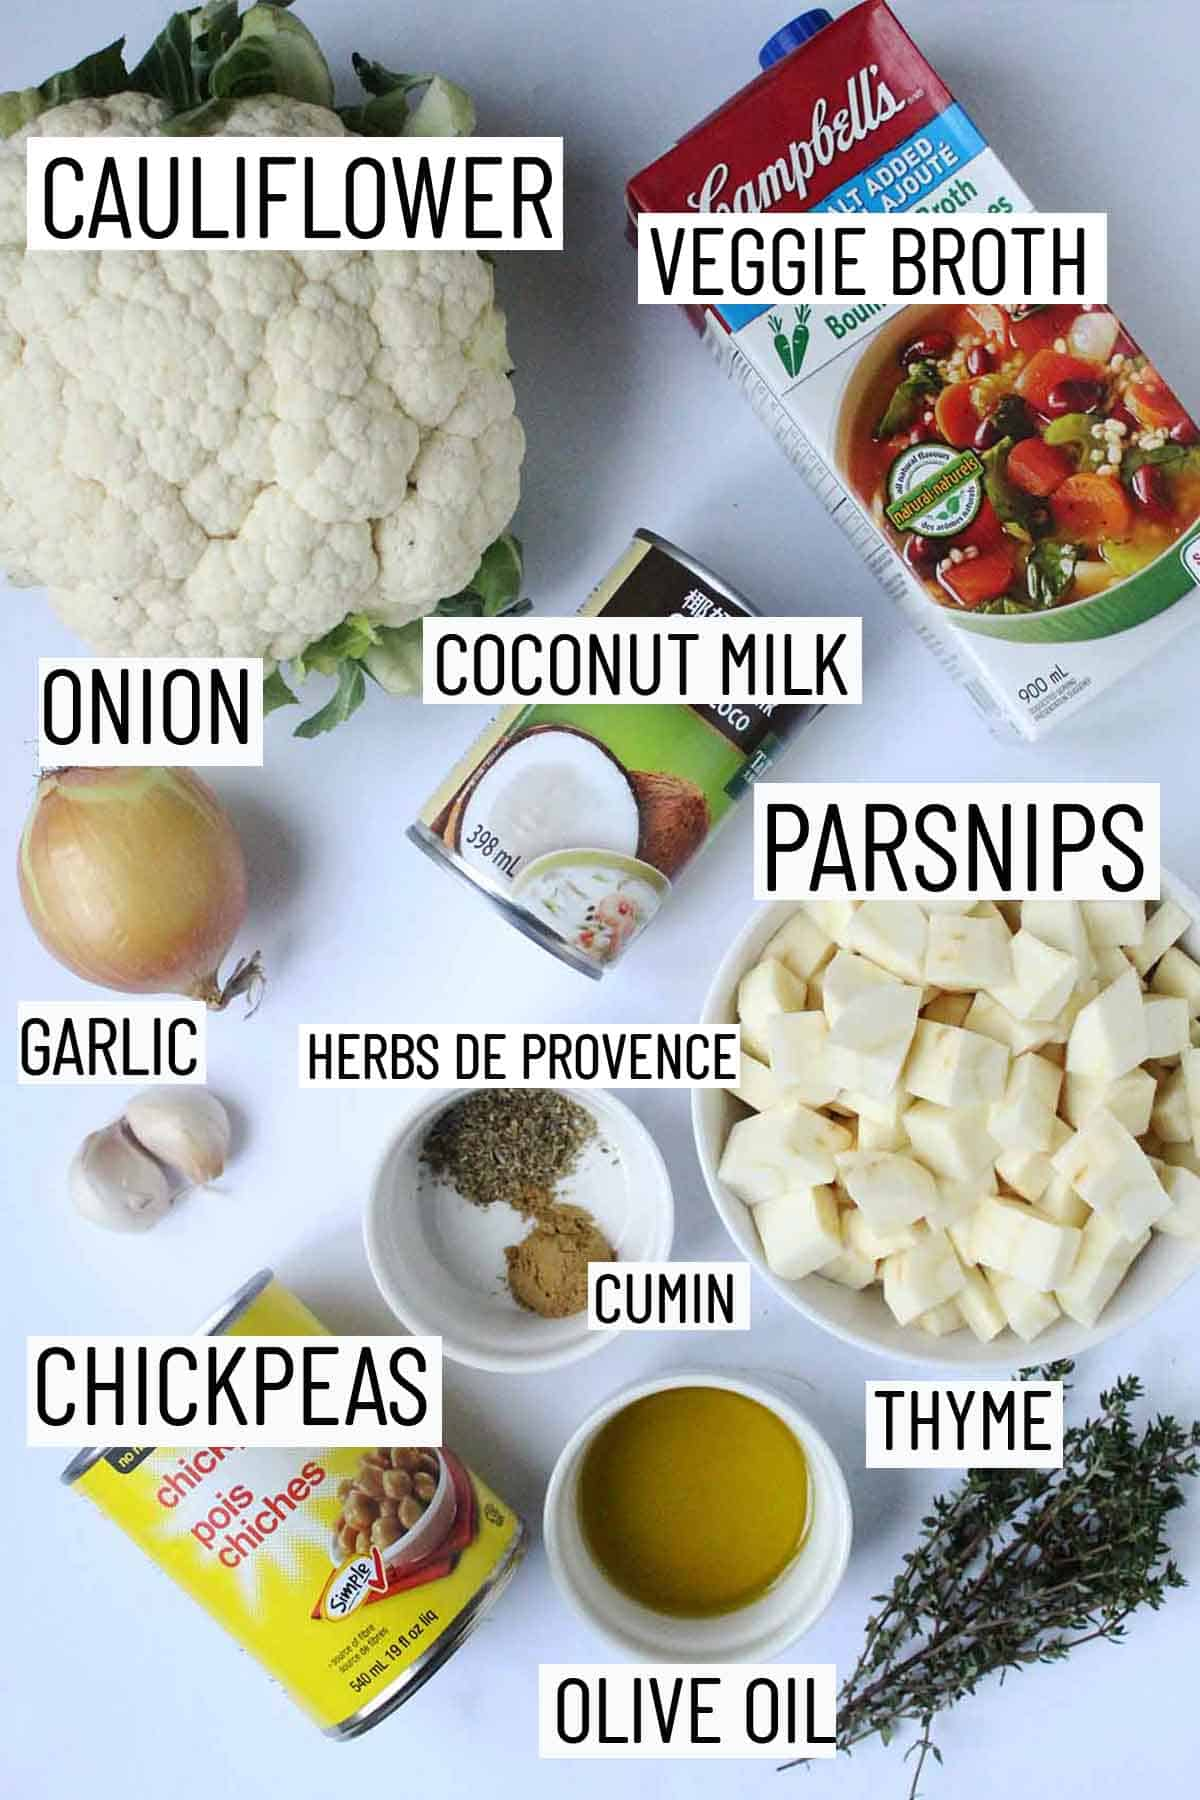 Flat lay image of recipe ingredients including thyme, olive oil, chickpeas, spices, cauliflower, parsnips, coconut milk, garlic, onion, and broth.